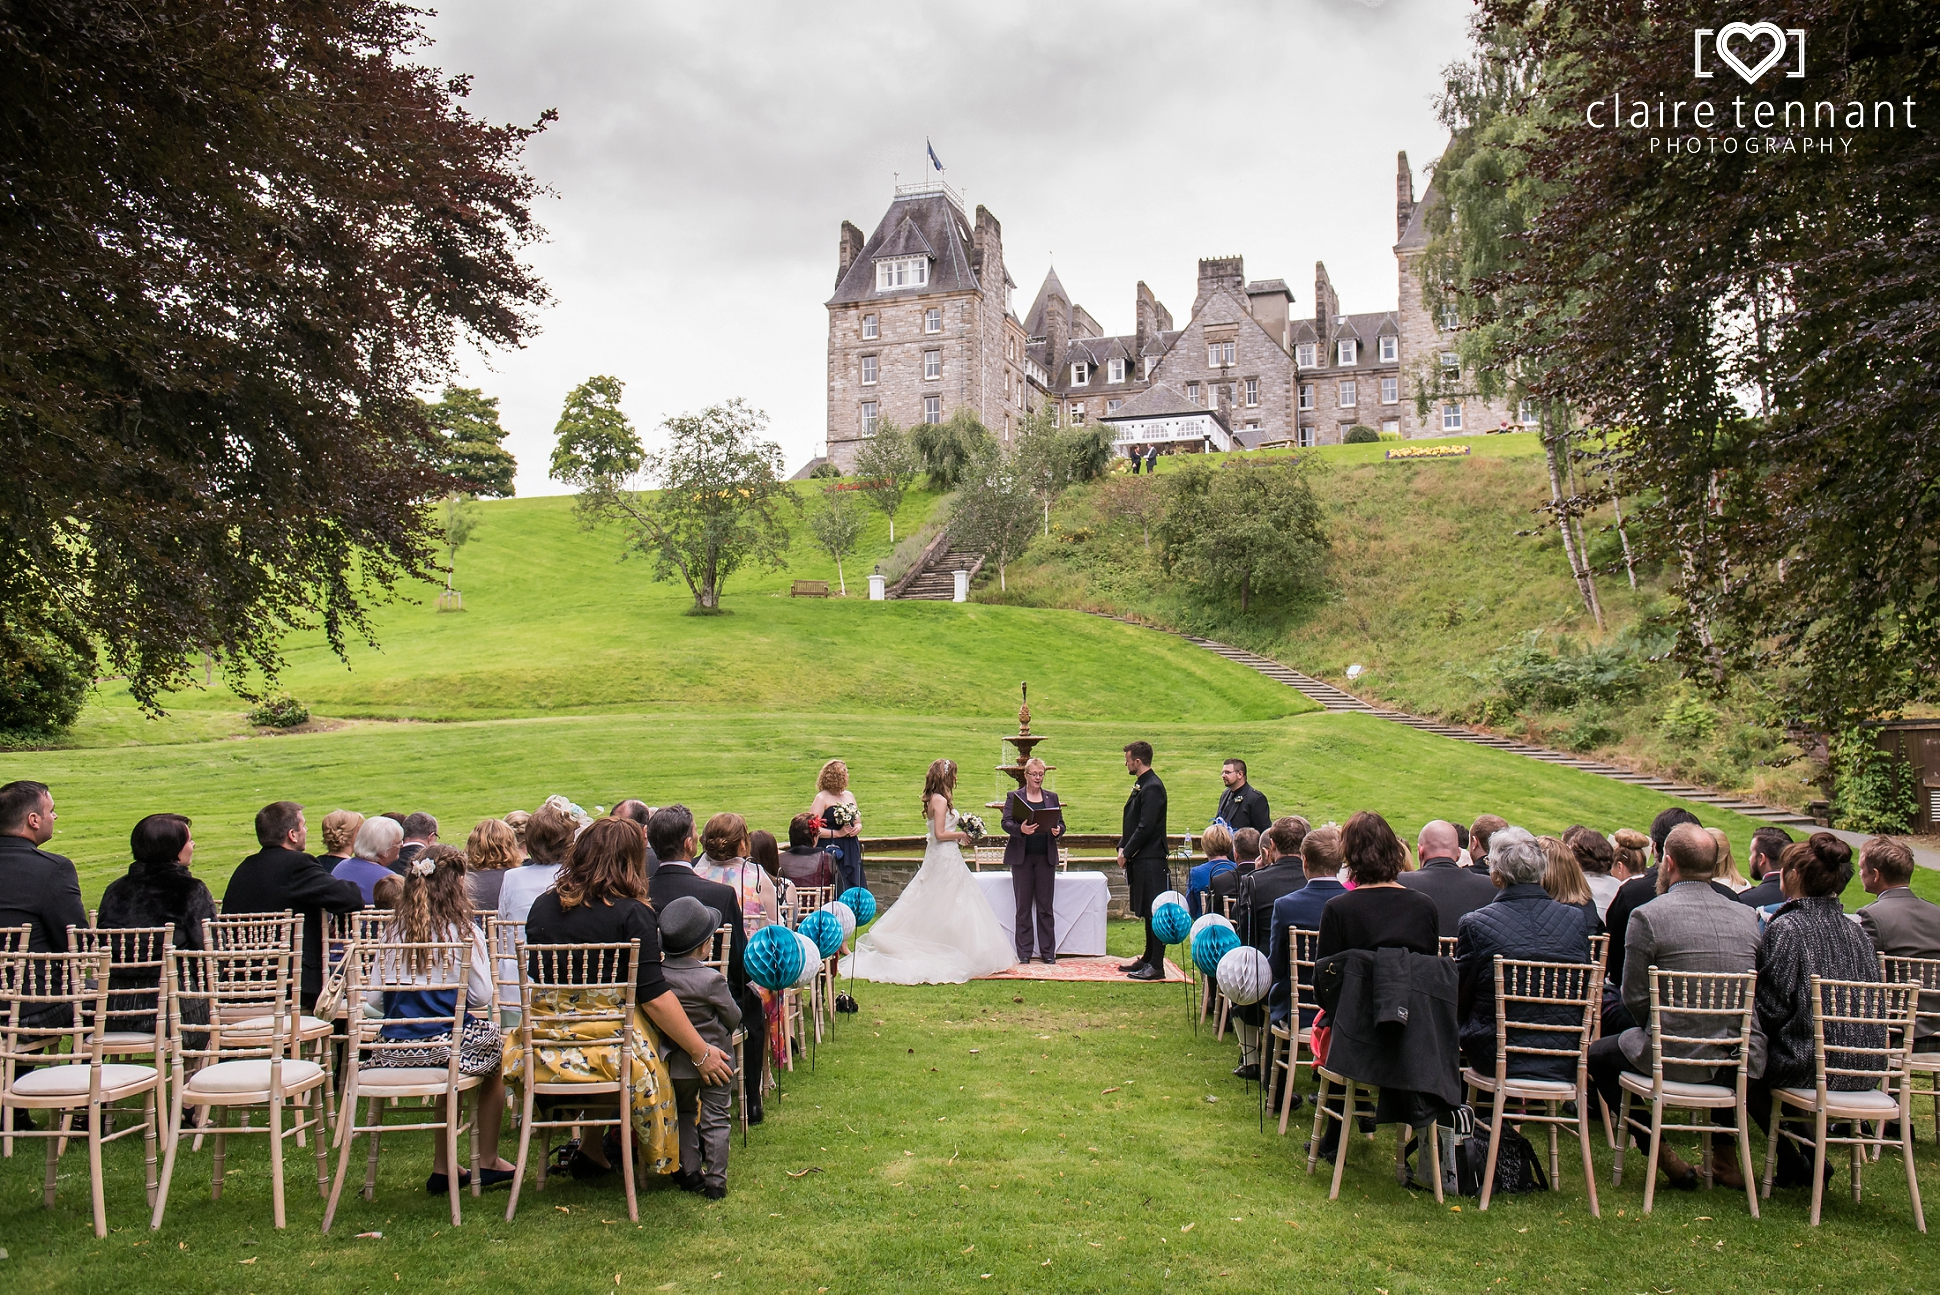 Atholl Palace Hotel Wedding  Featuring Picturesque Outdoor Ceremony